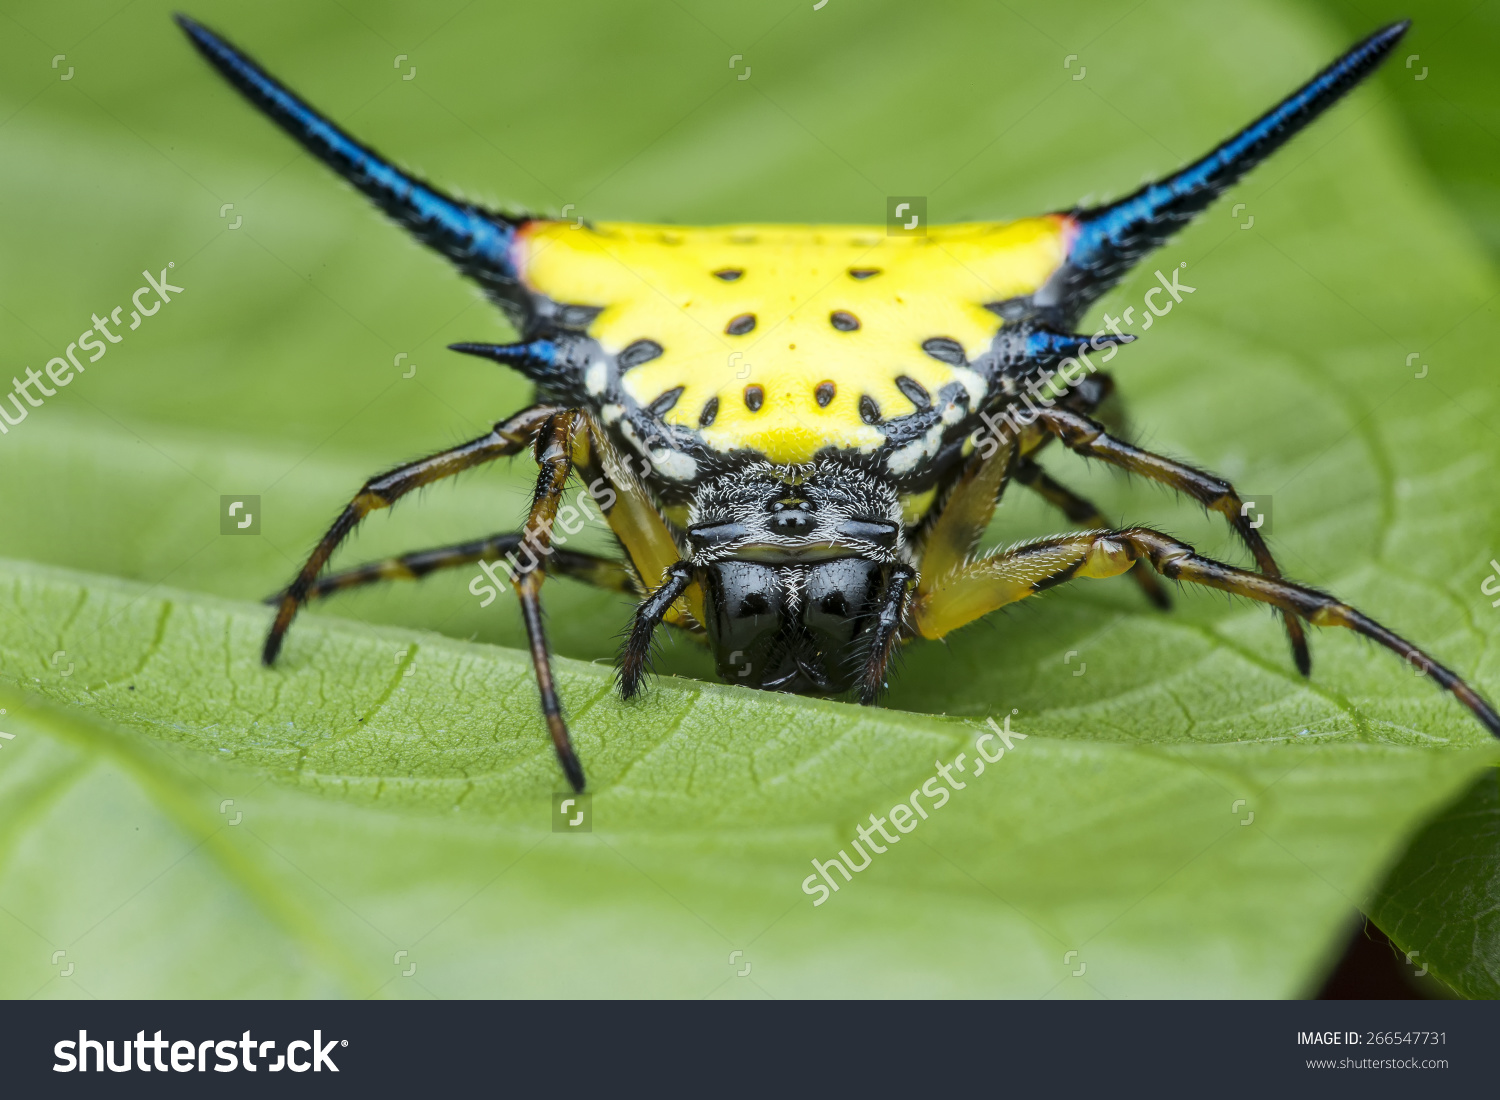 Spiny Orb Weaver clipart #8, Download drawings